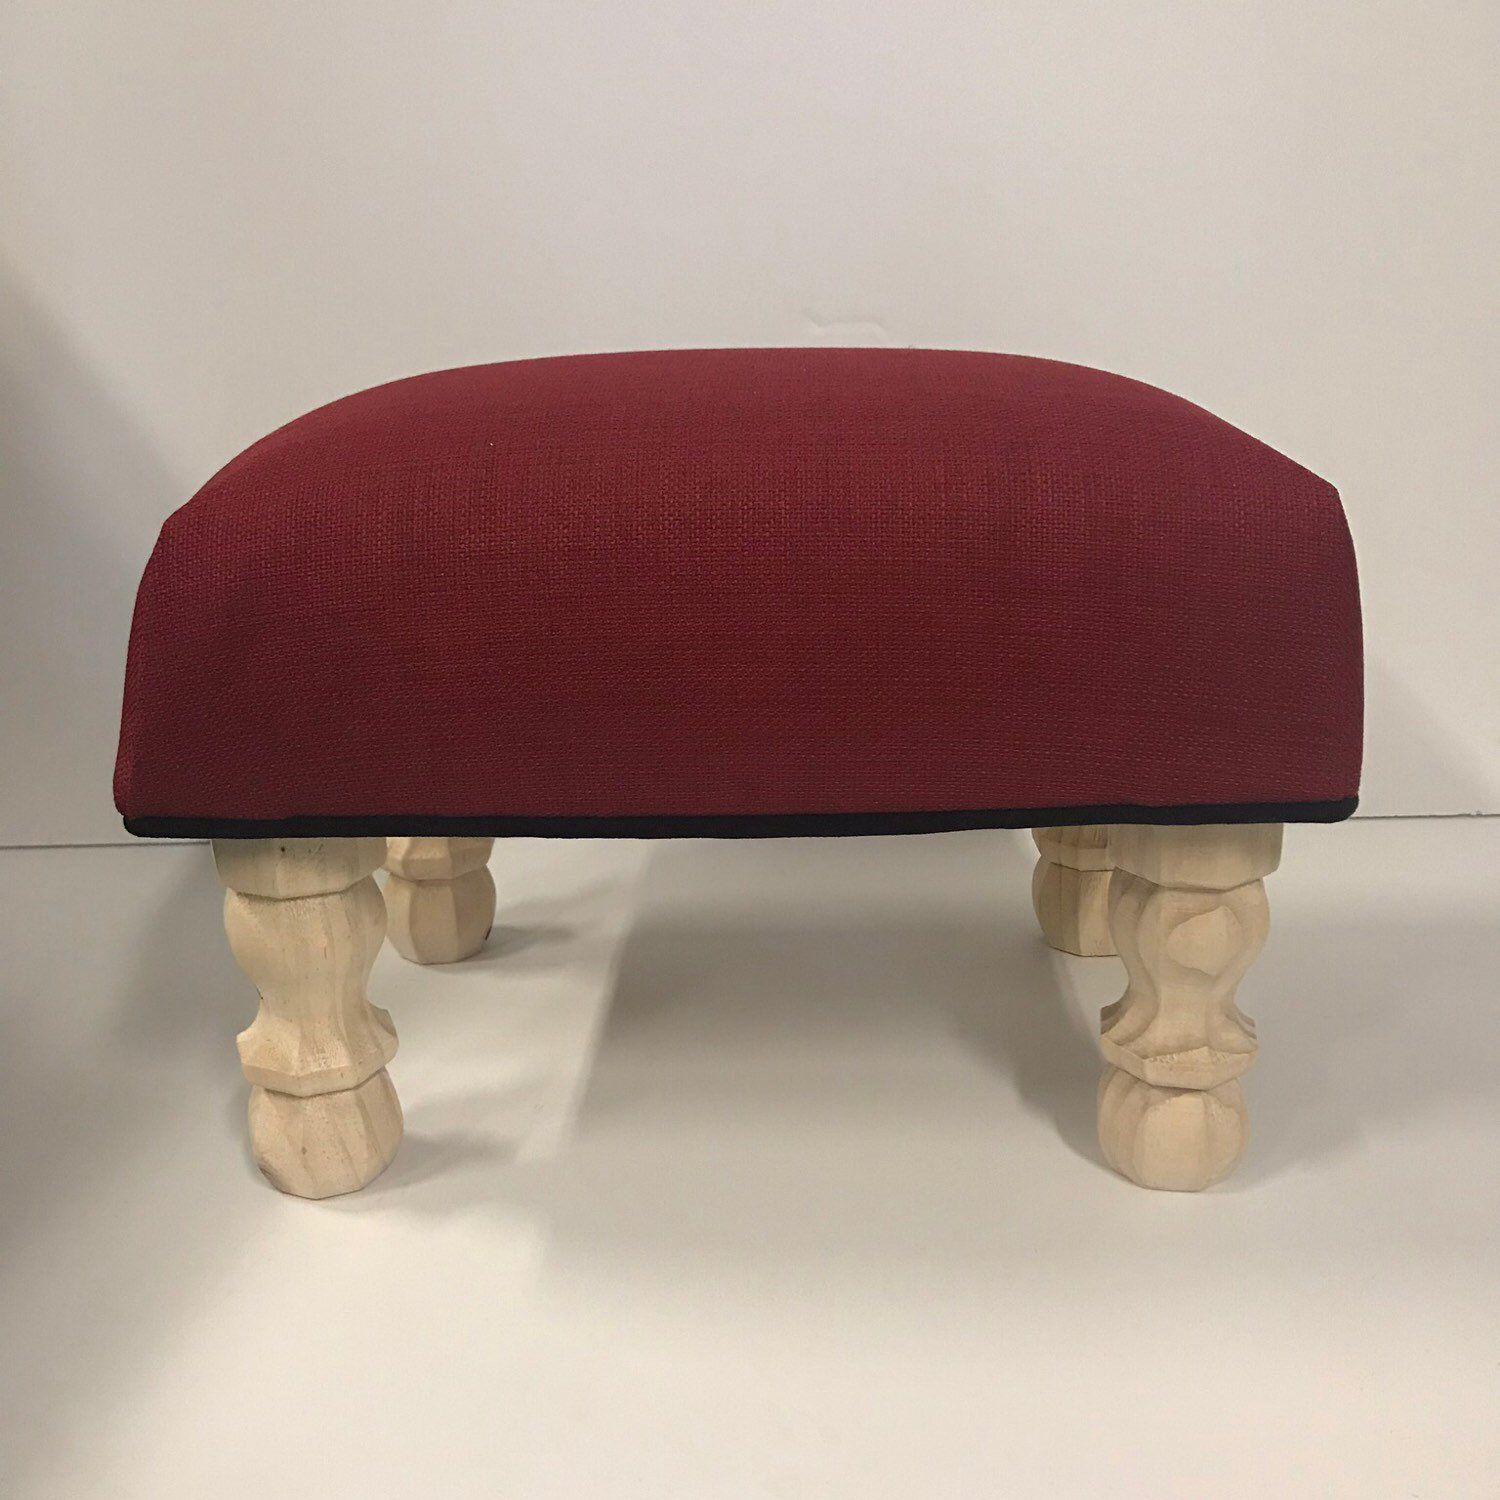 Our Holiday Winter Diy Footstool Kit Great Gift For Your Diy